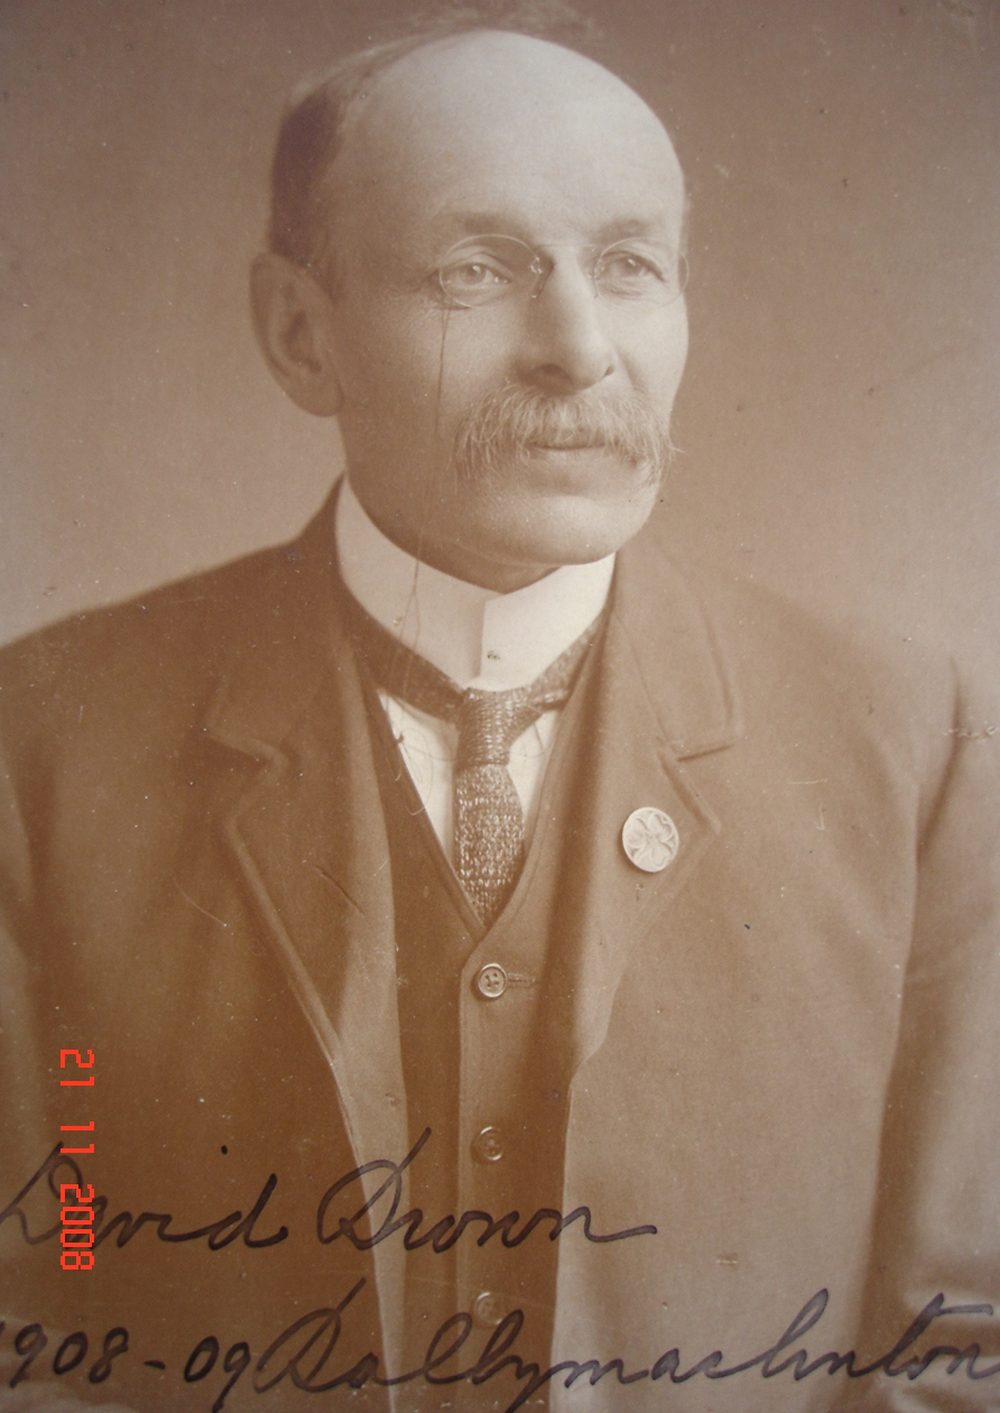 David Brown, co-director of the Donaghmore Soap Works, county Tyrone, c. 1908-09. The caption refers to 'Ballymaclinton' – the name of village display at the International exhibitions. He was aged 49 in this picture, and if he is the photographer of our Palestine collection, made that journey a decade earlier in his late thirties. Picture courtesy of Donaghmore Historical Society.